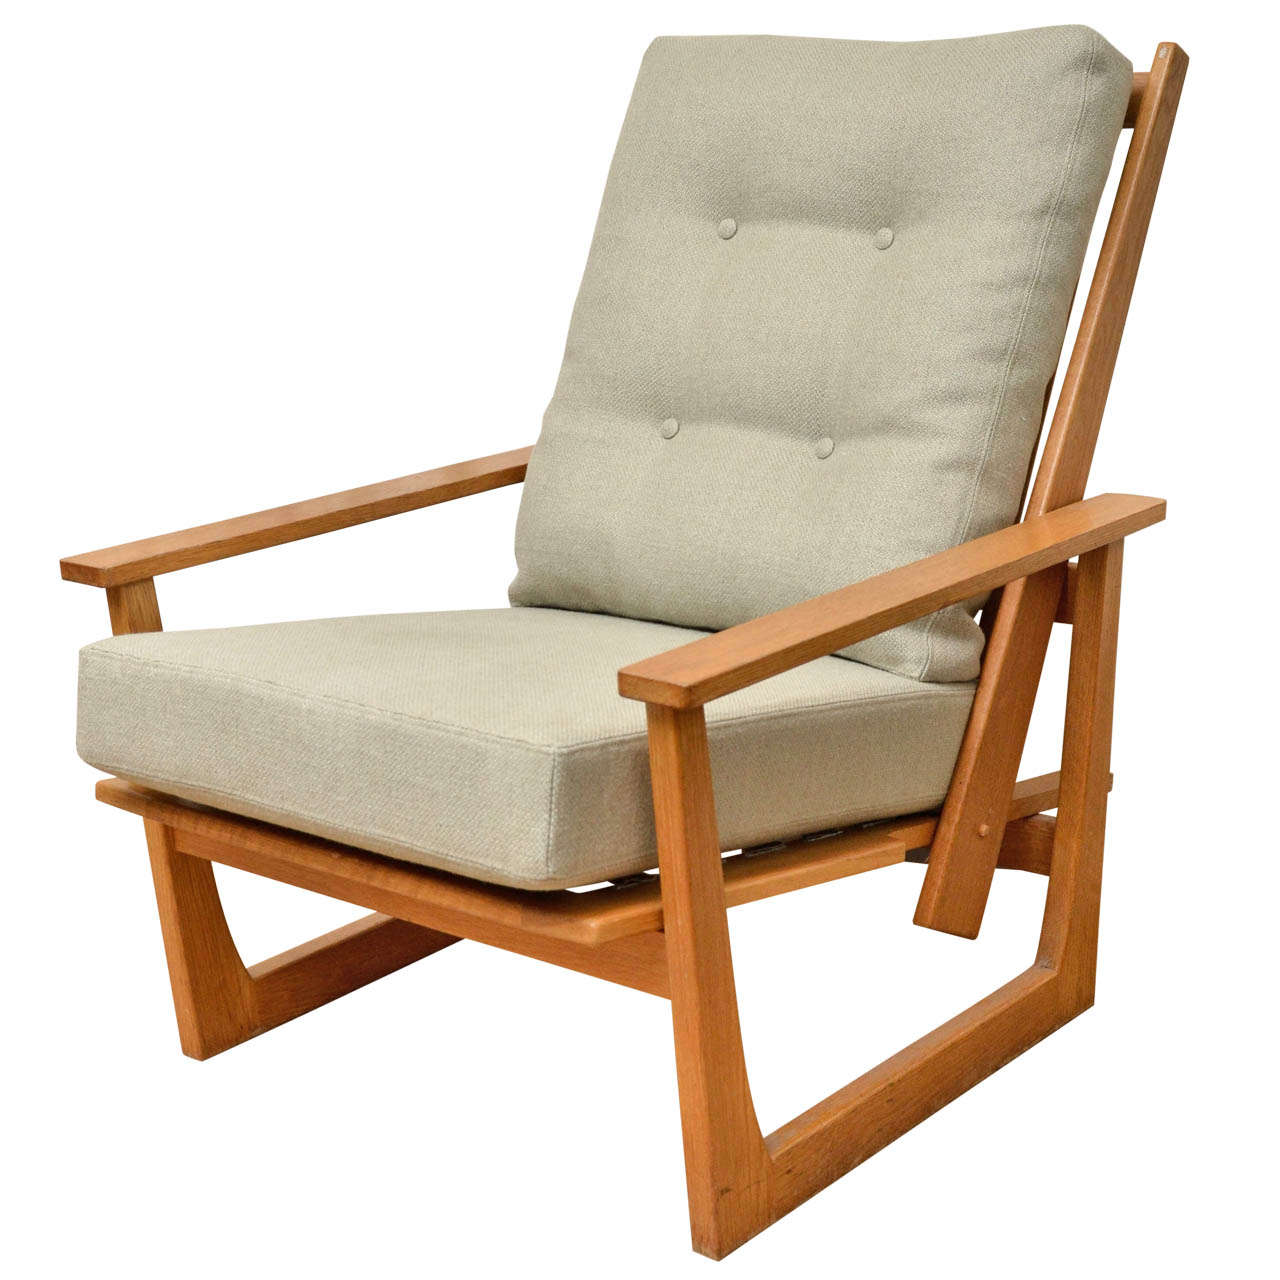 Charmant Reclining Wooden Lounge Chair For Sale